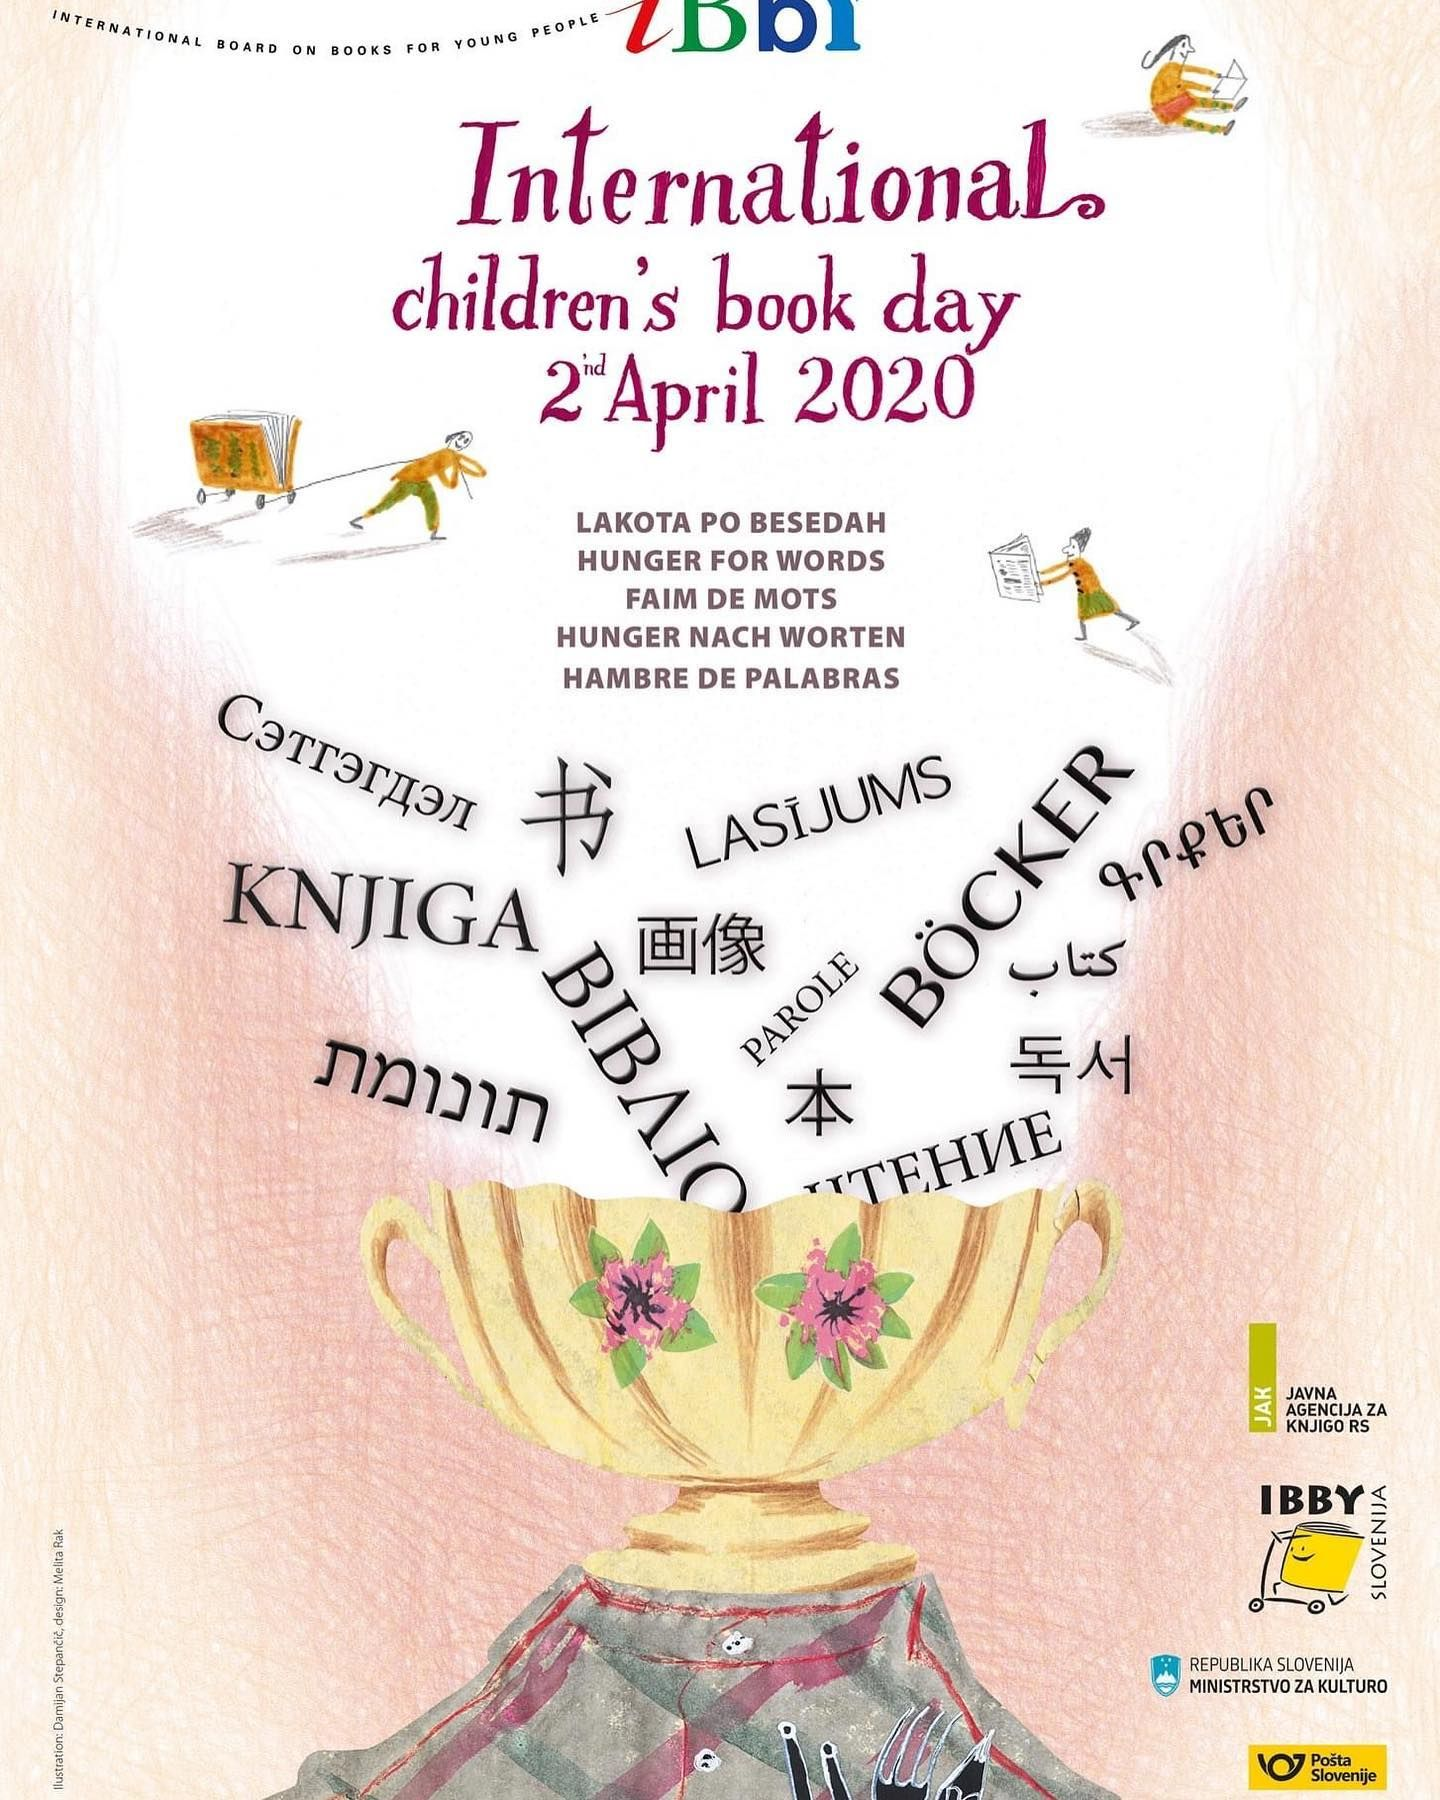 Https Www Ibby Org Awards Activities Activities International Childrens Book Day Libraries Librarians Librarianshi Childrens Books Usborne Books Childrens